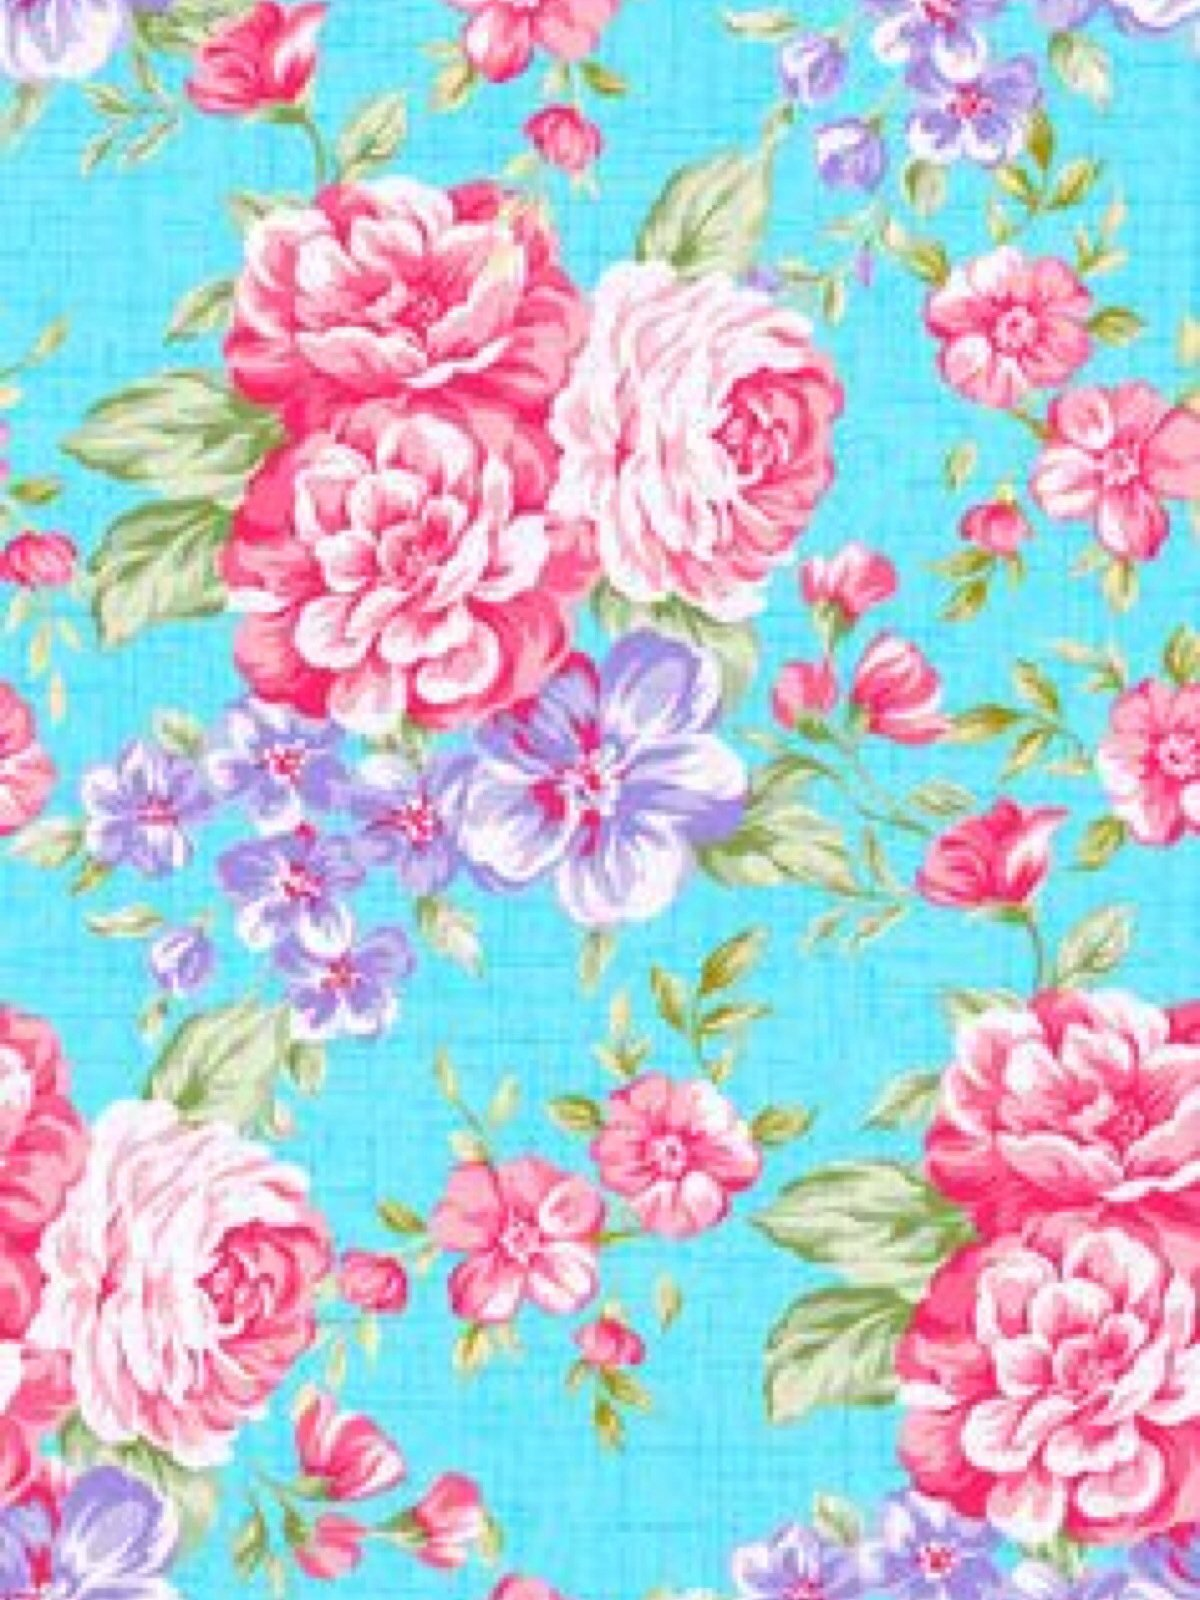 Free Download Blue And Pink Flower Wallpaper Romantic Background